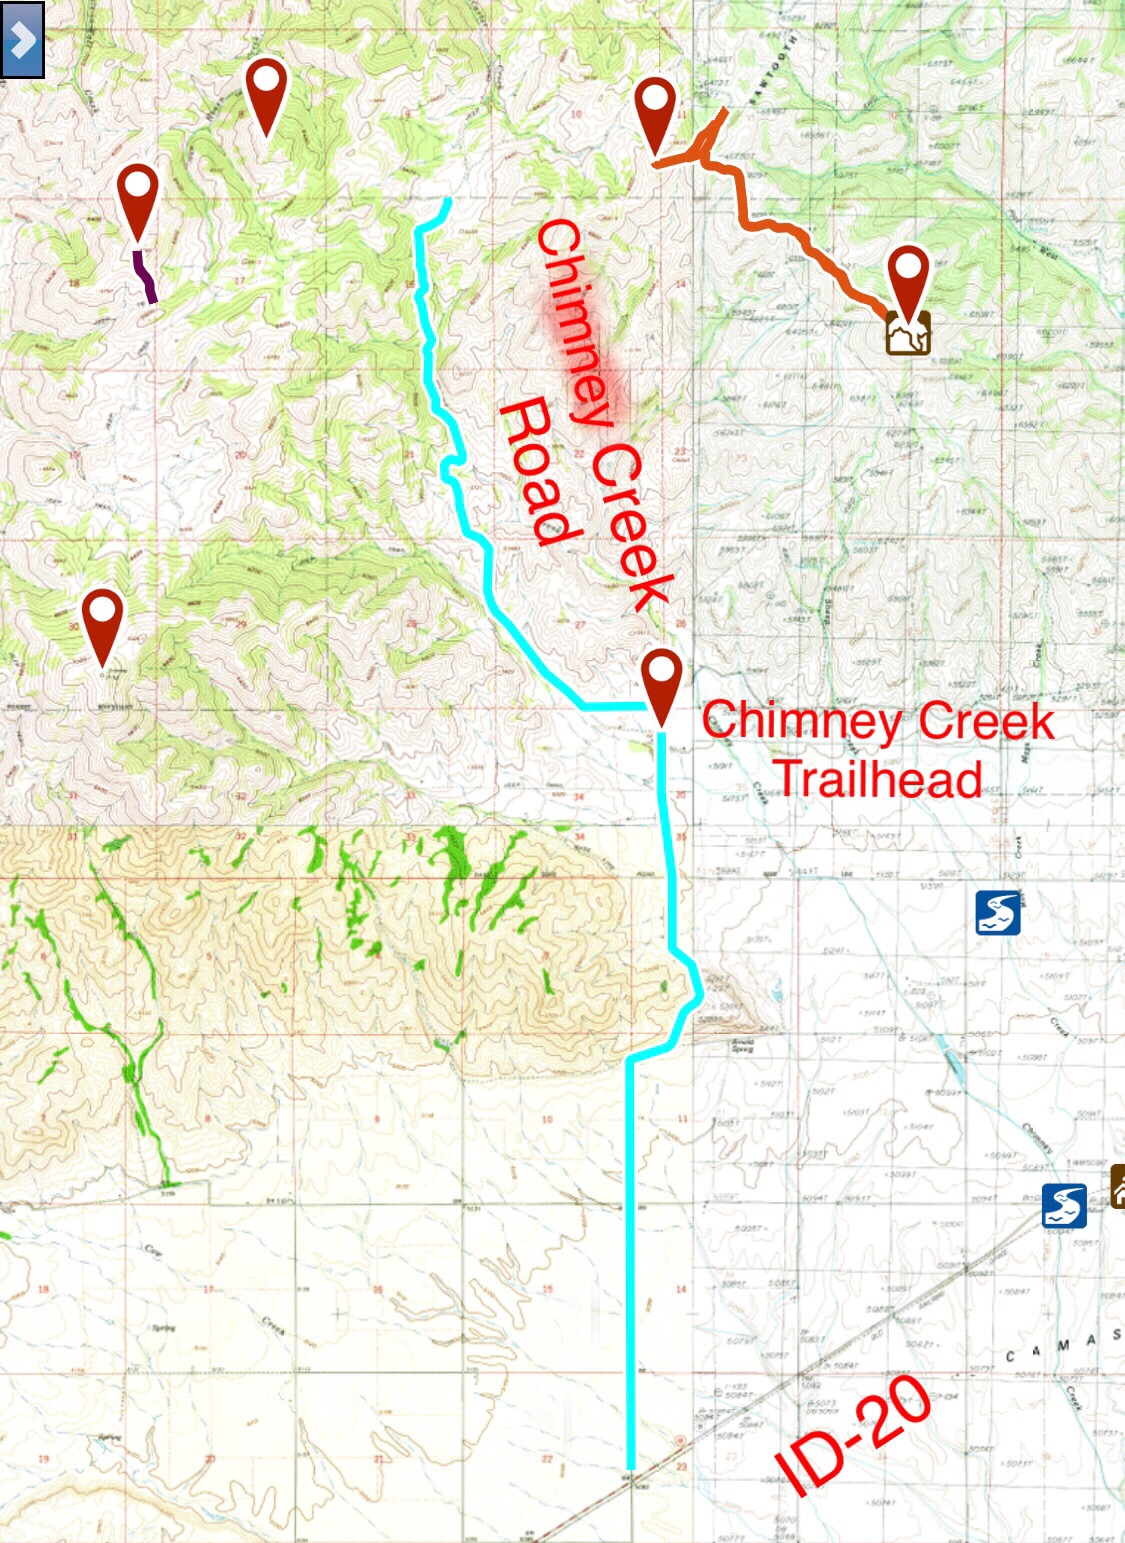 Chimney Creek Road - IDAHO: A Climbing Guide on minnesota chippewa national forest map, salmon-challis national forest map, city of rocks national reserve map, denali national park and preserve map, caribou national forest map, deerlodge national forest map, gallatin petrified forest map, idaho map, lewis and clark national forest map, mt. baker national forest map, bering land bridge national preserve map, butte valley national grassland map, gallatin national forest map, cache national forest map, custer national forest map, sawtooth range idaho, sawtooth wilderness, green mountain national forest map, cda national forest map, magic valley mall map,